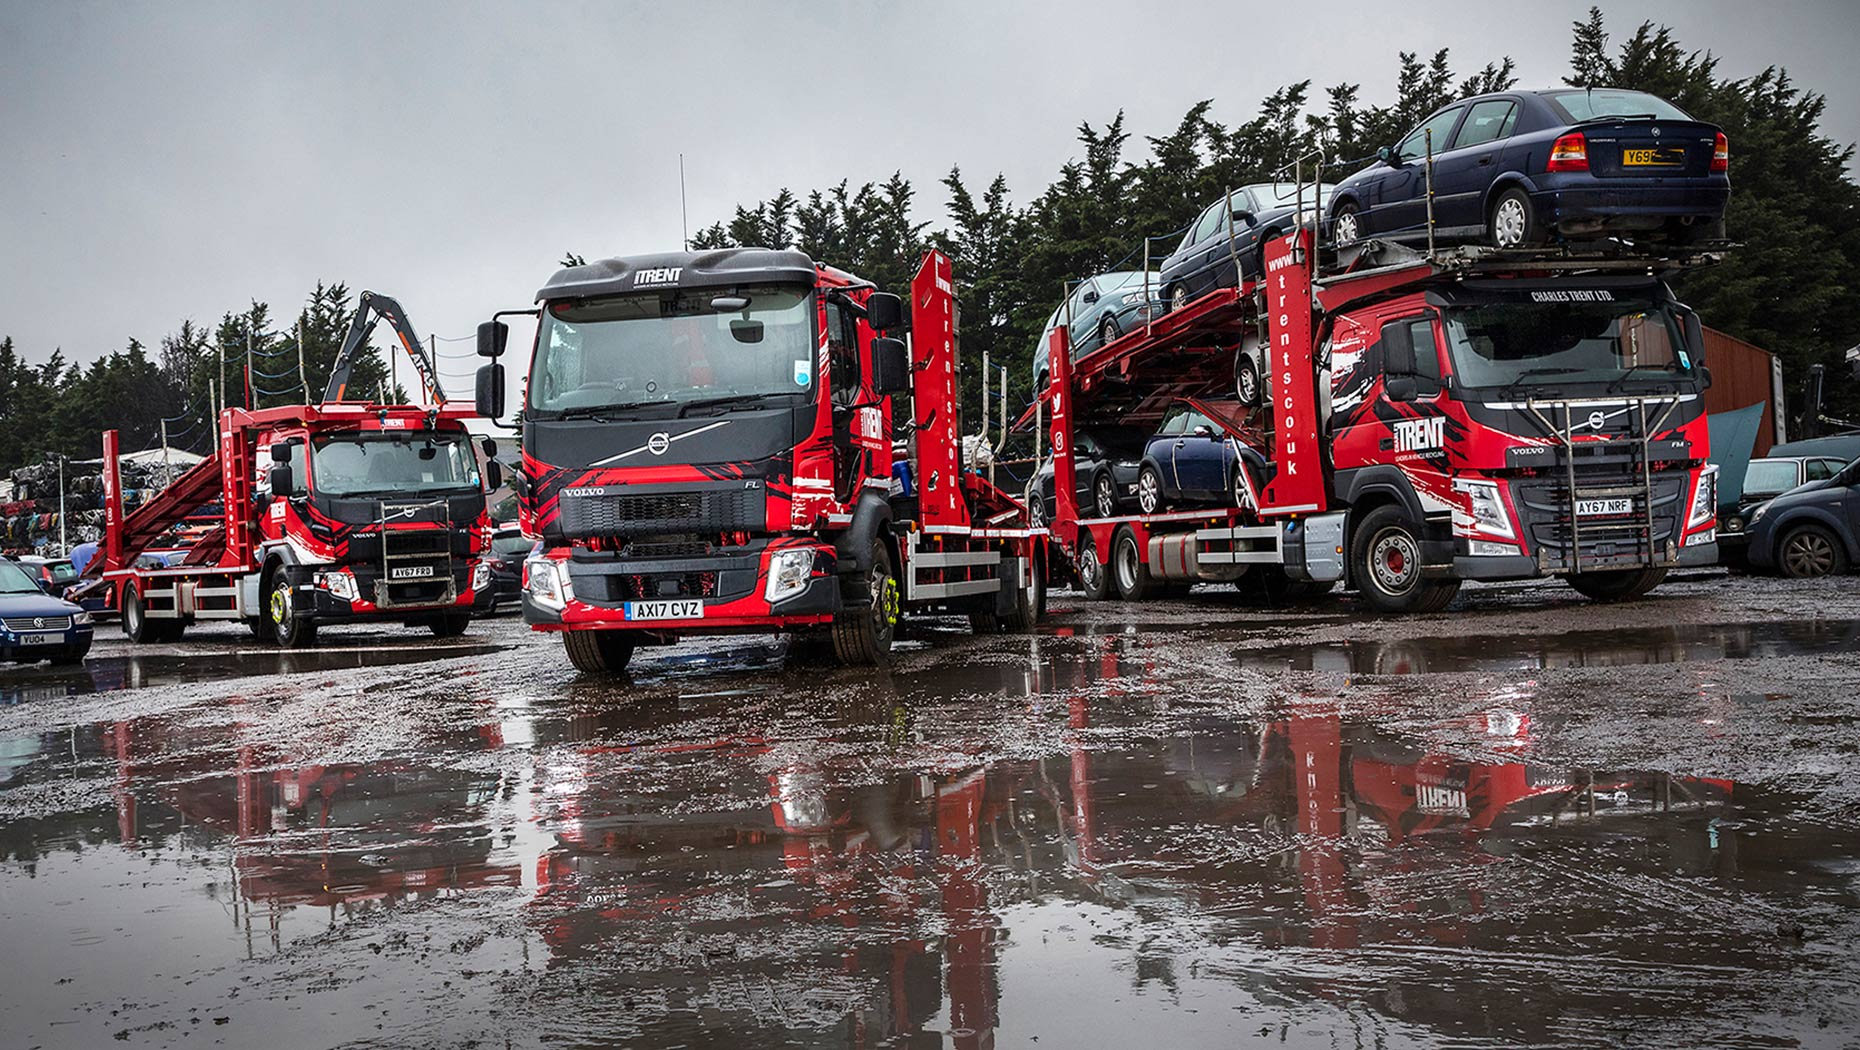 Charles Trent Ltd, has taken delivery of six new Volvo trucks